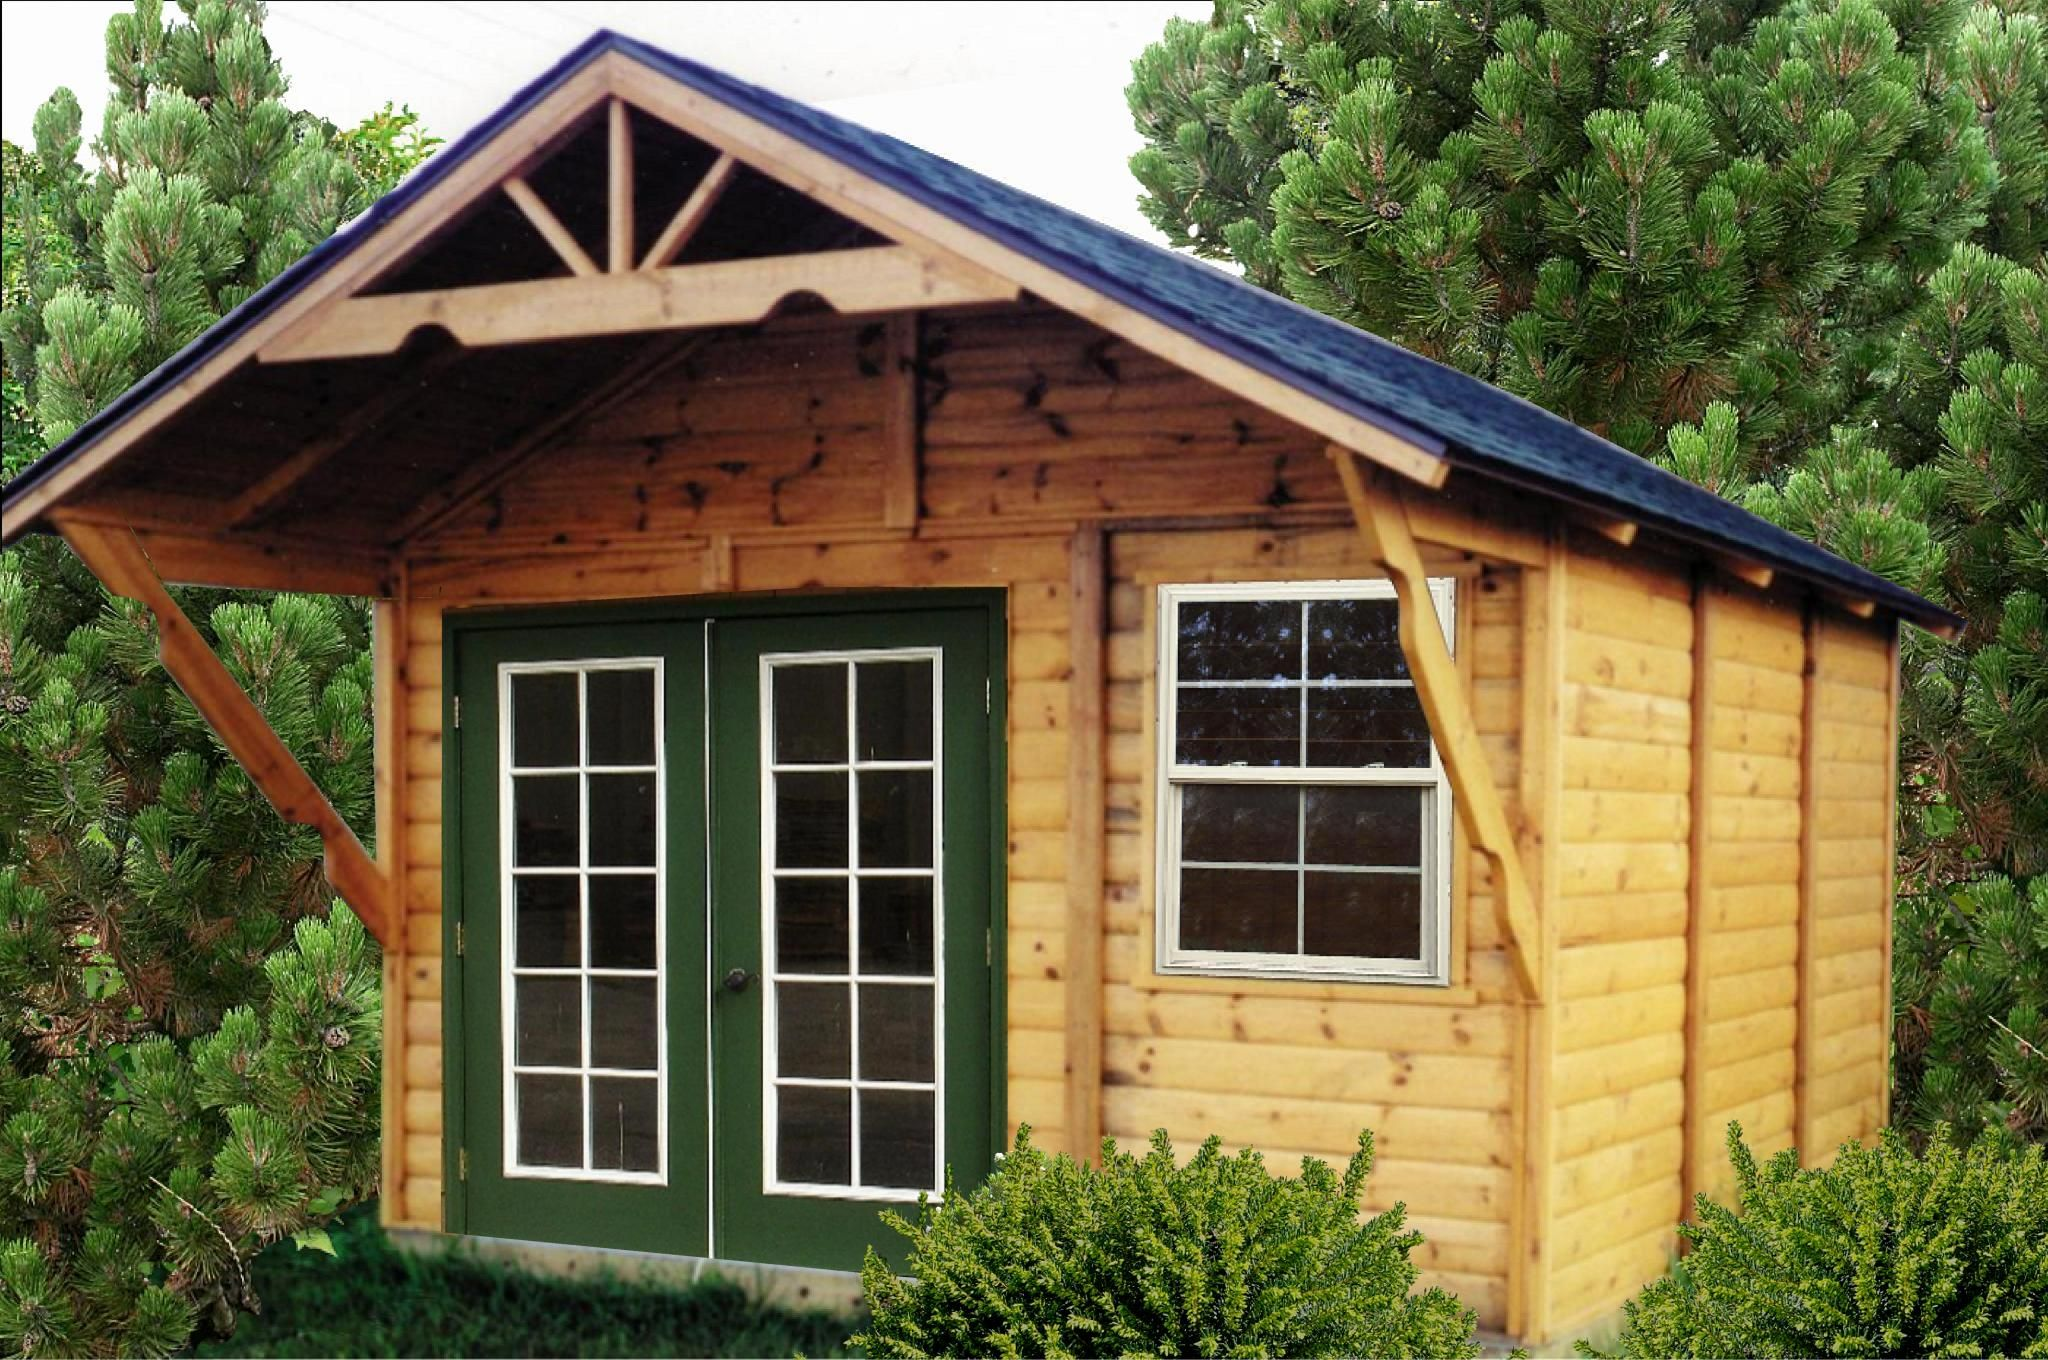 Garden shed ideas wooden storage shed plans home for Outdoor garden shed